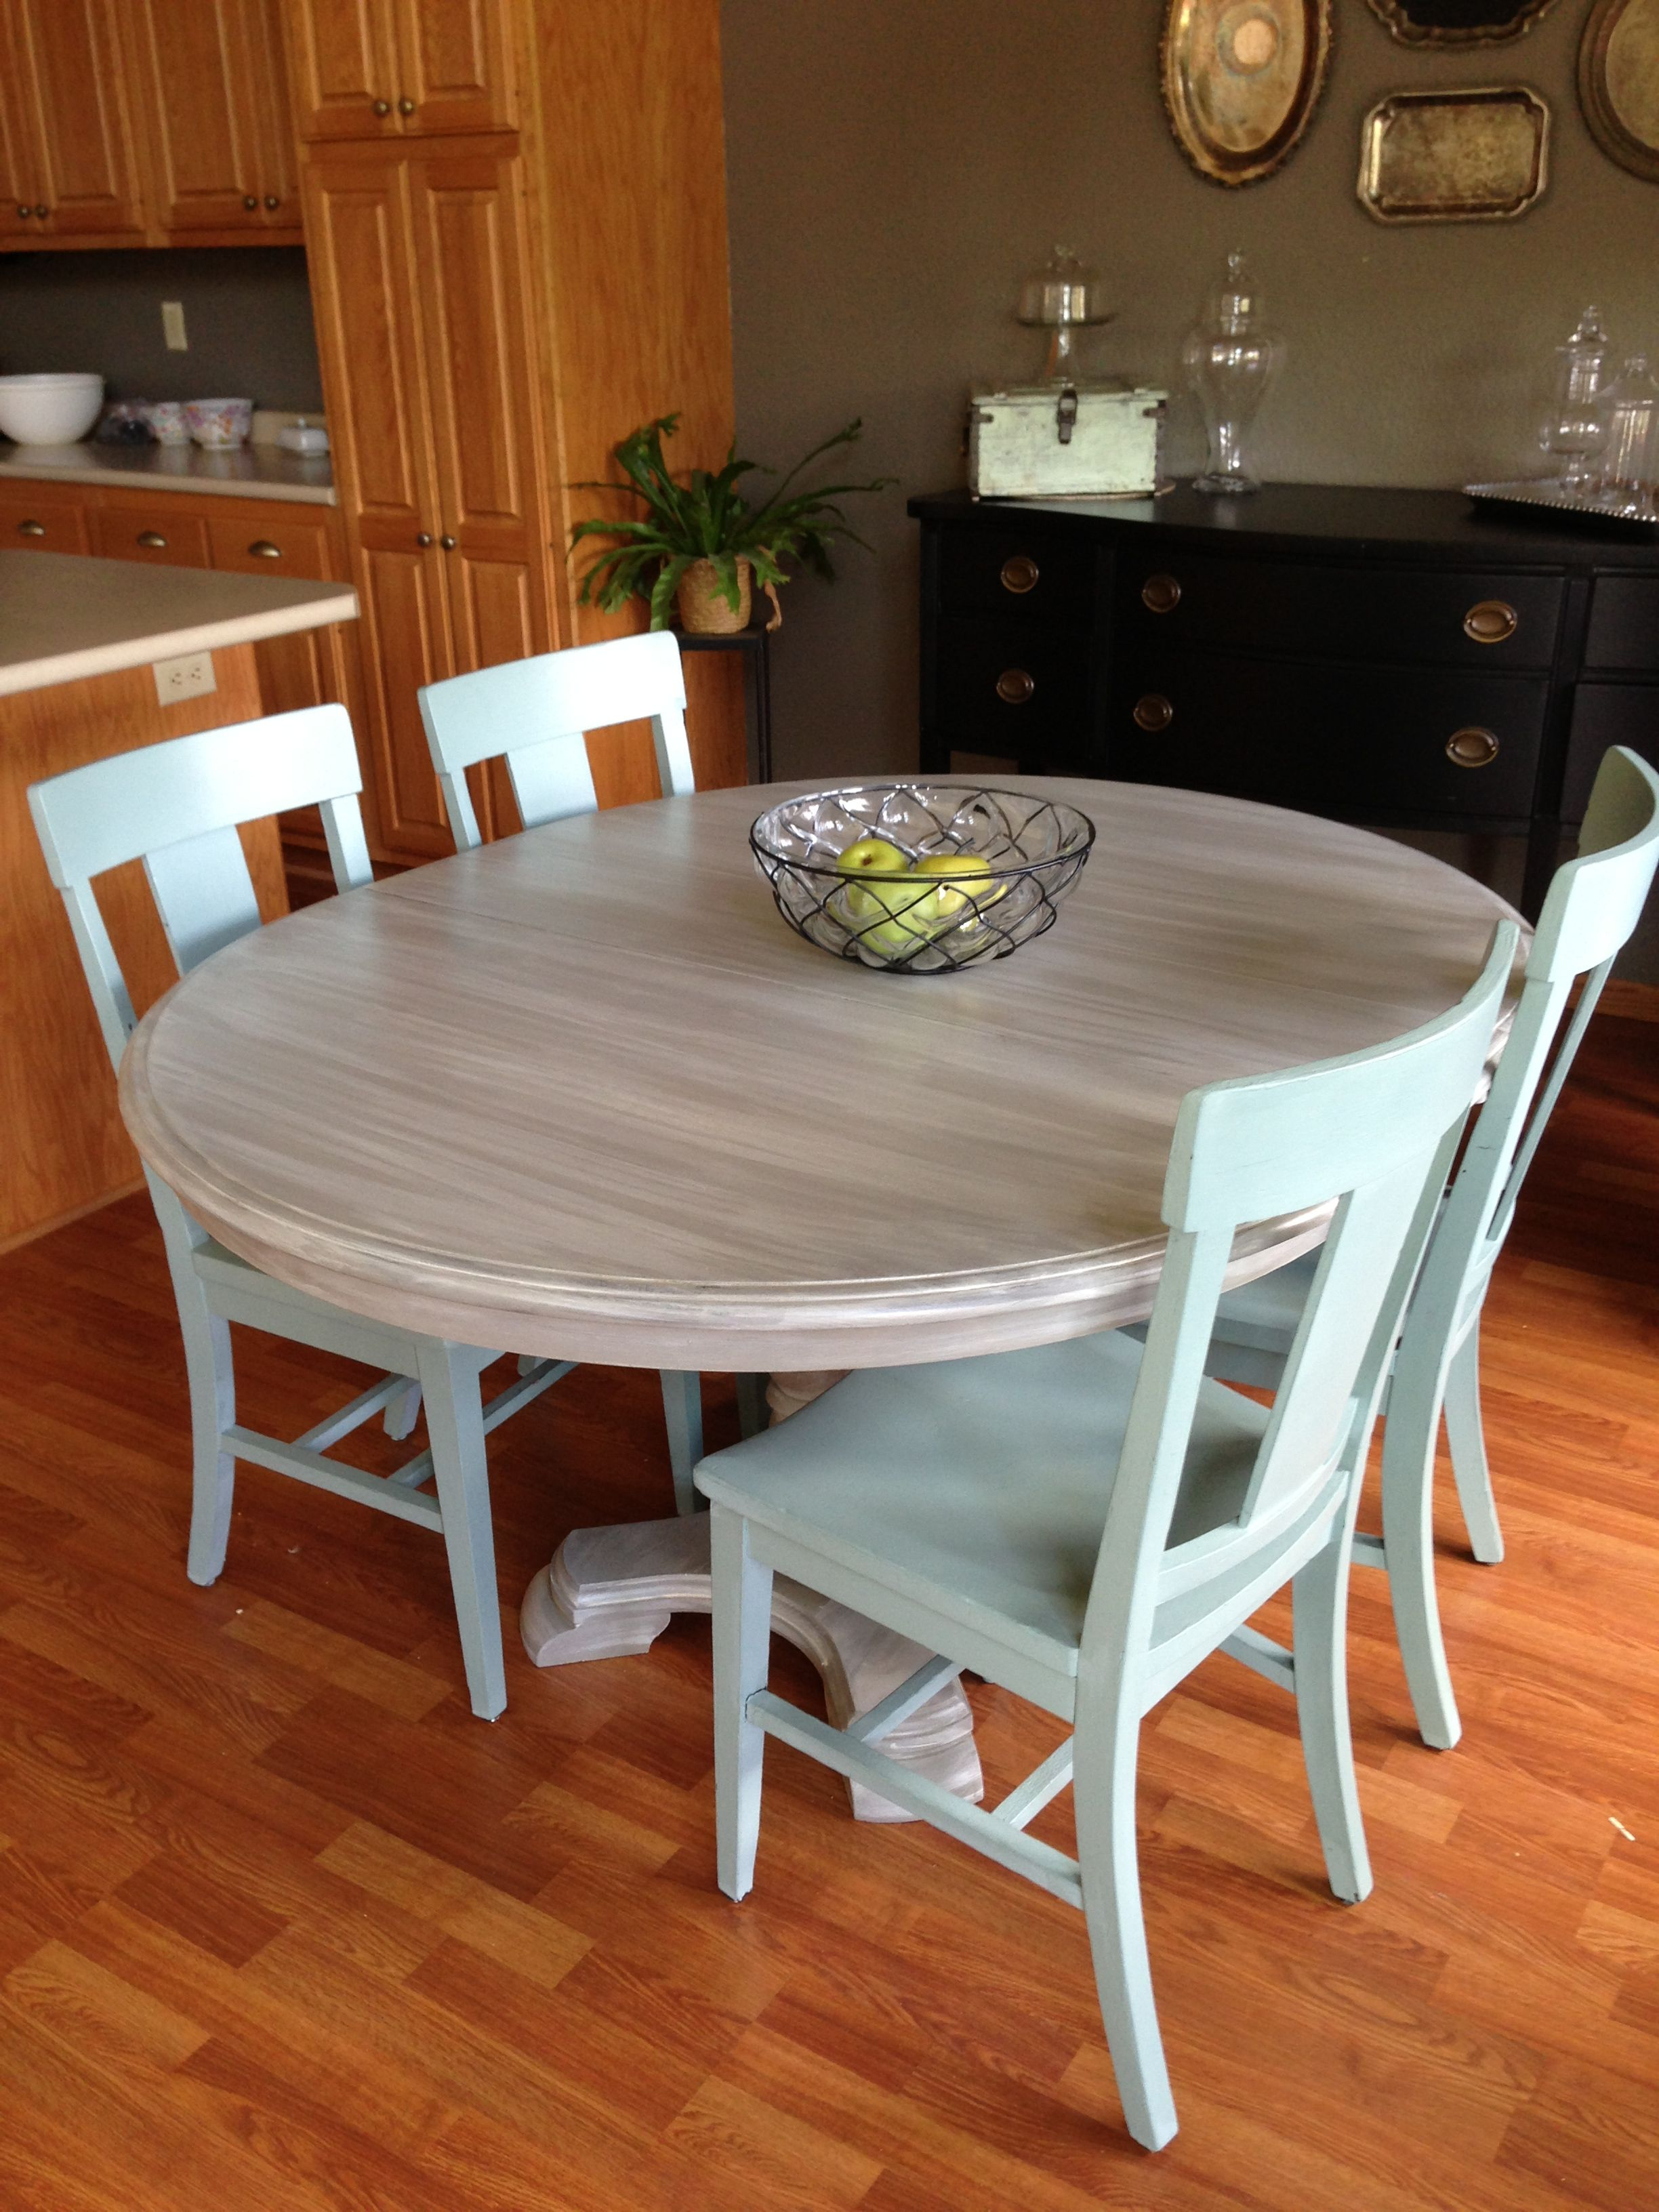 Pin by Emily Zeidler on My projects  Kitchen table makeover